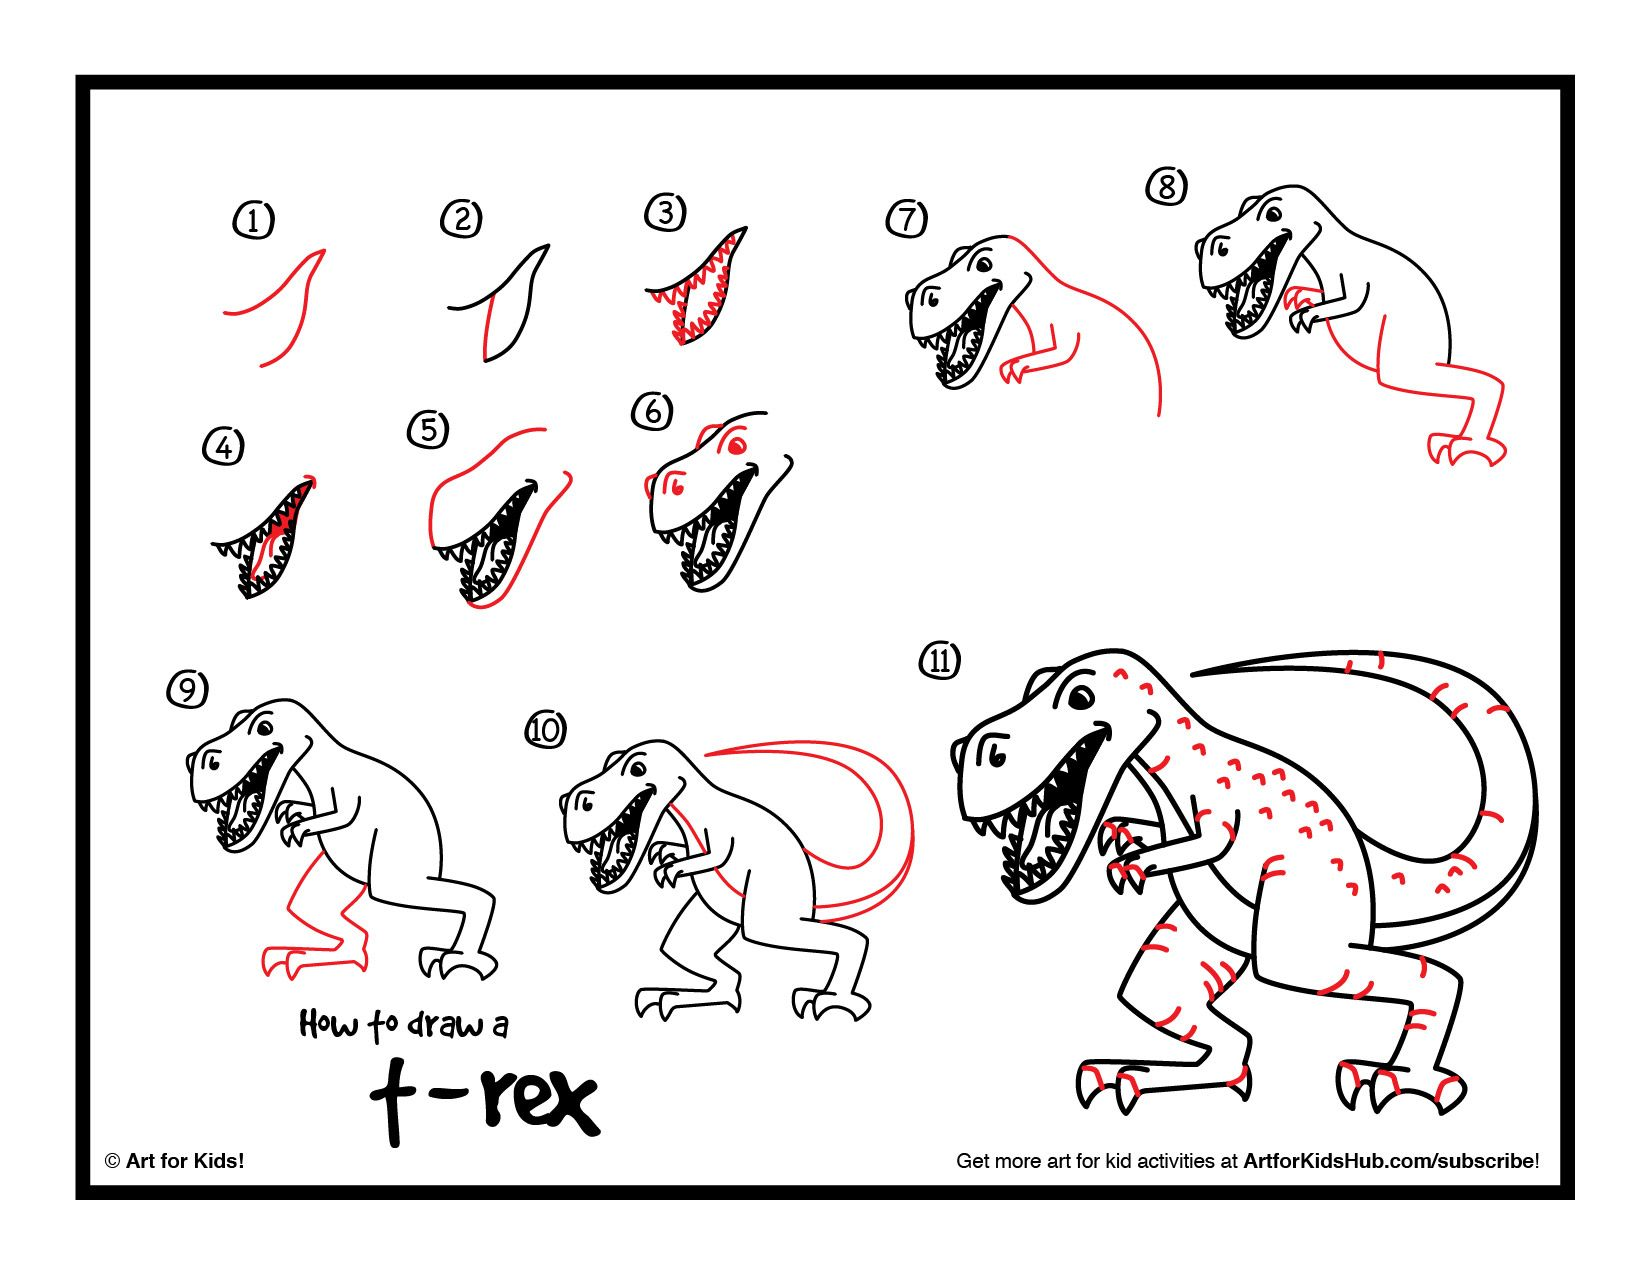 How To Draw A Realistic T-Rex (Art Club Members) - Art For ...